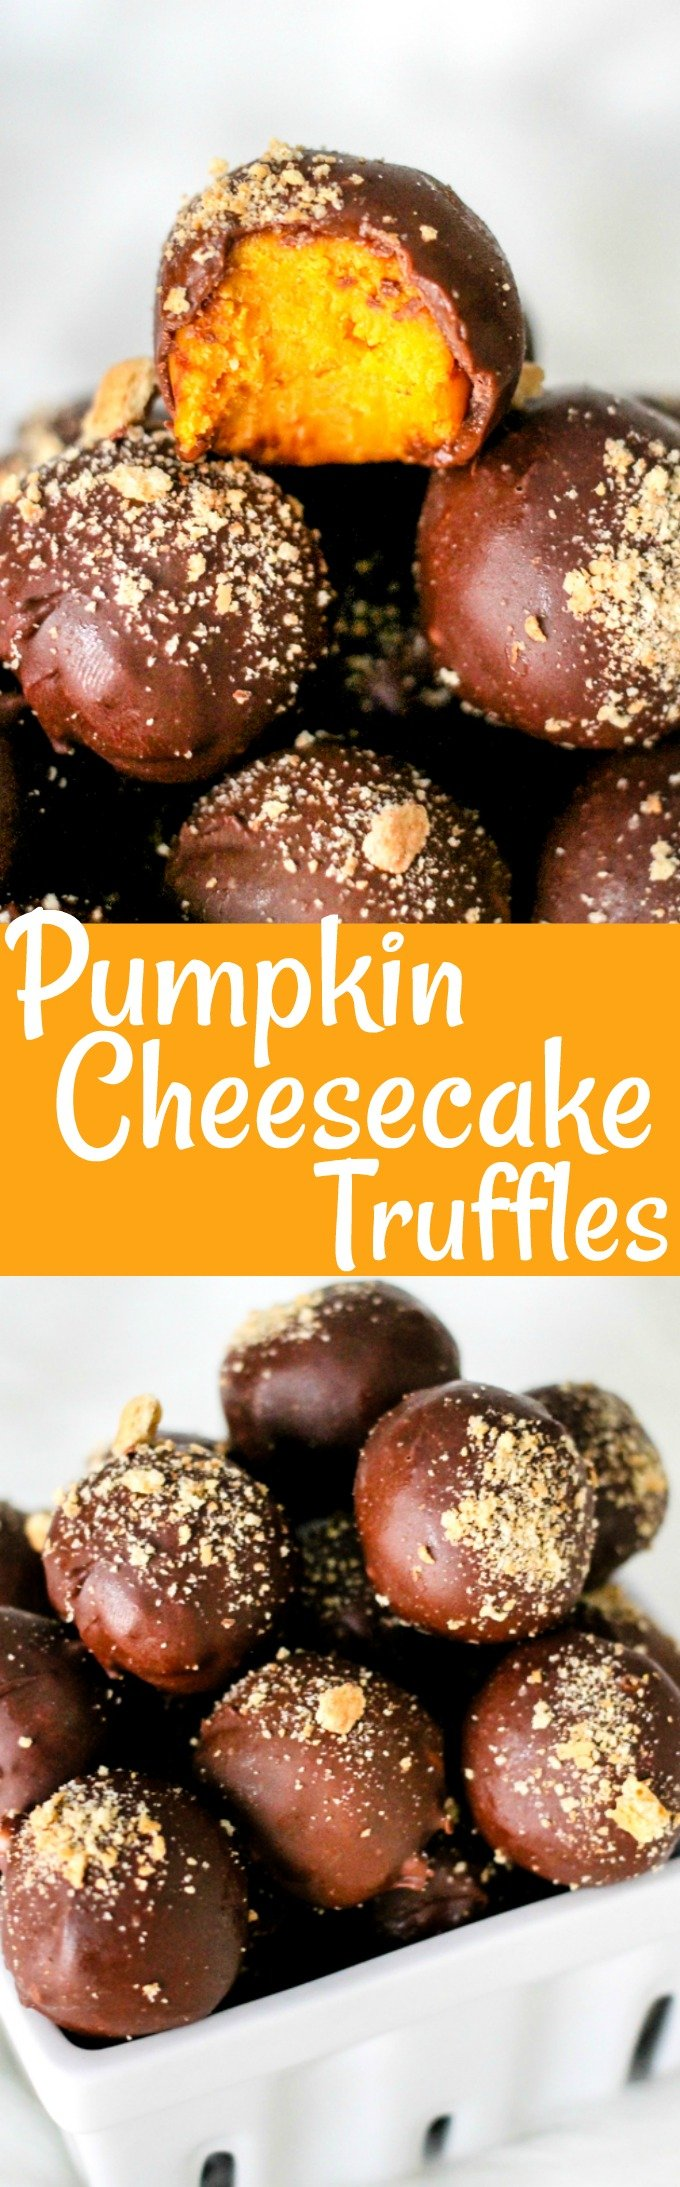 Chocolate Covered Pumpkin Cheesecake Truffles are a super delicious dessert that are perfect for fall and the holidays! You have to try these!